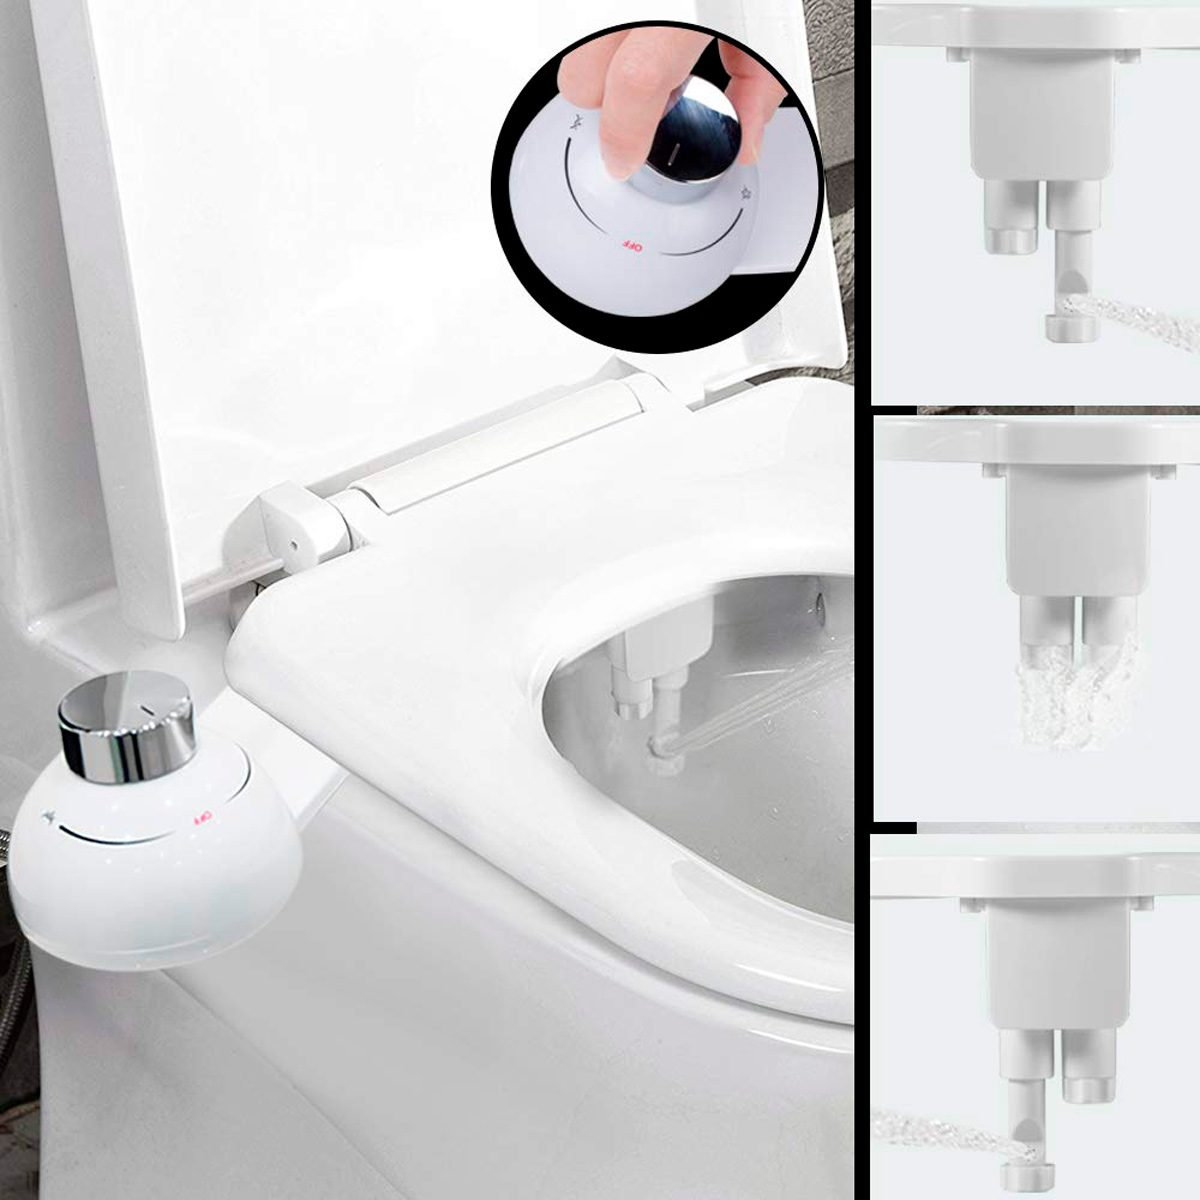 Fantastic 8 Bidet Attachments For Your Home Toilet Family Handyman Gmtry Best Dining Table And Chair Ideas Images Gmtryco